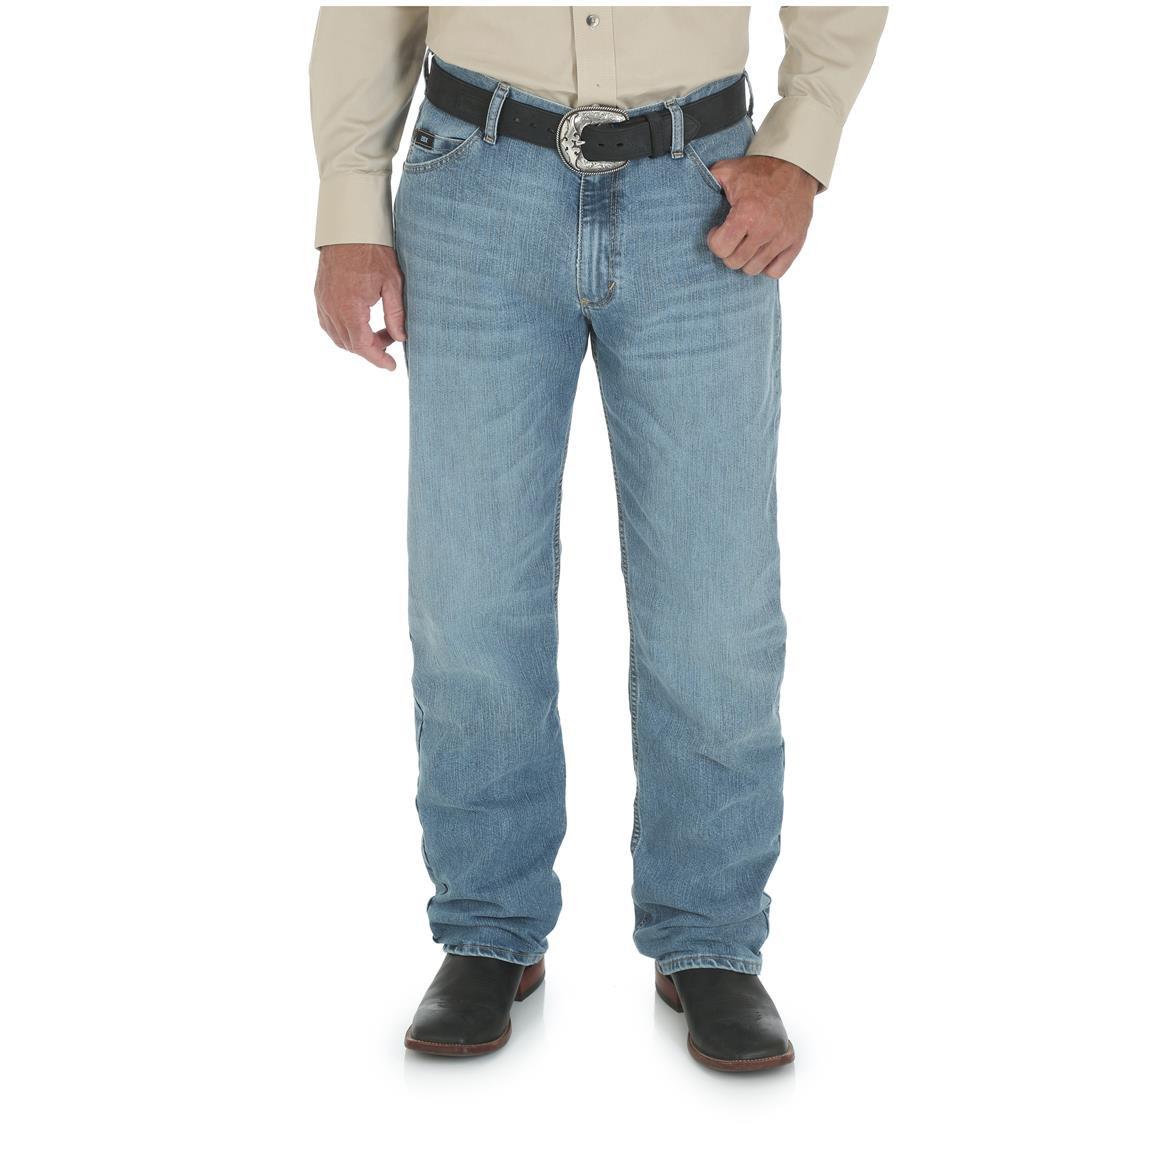 Wrangler Men's 20X 01 Competition Relaxed Jean, Cool Vantage, Ocean Blue